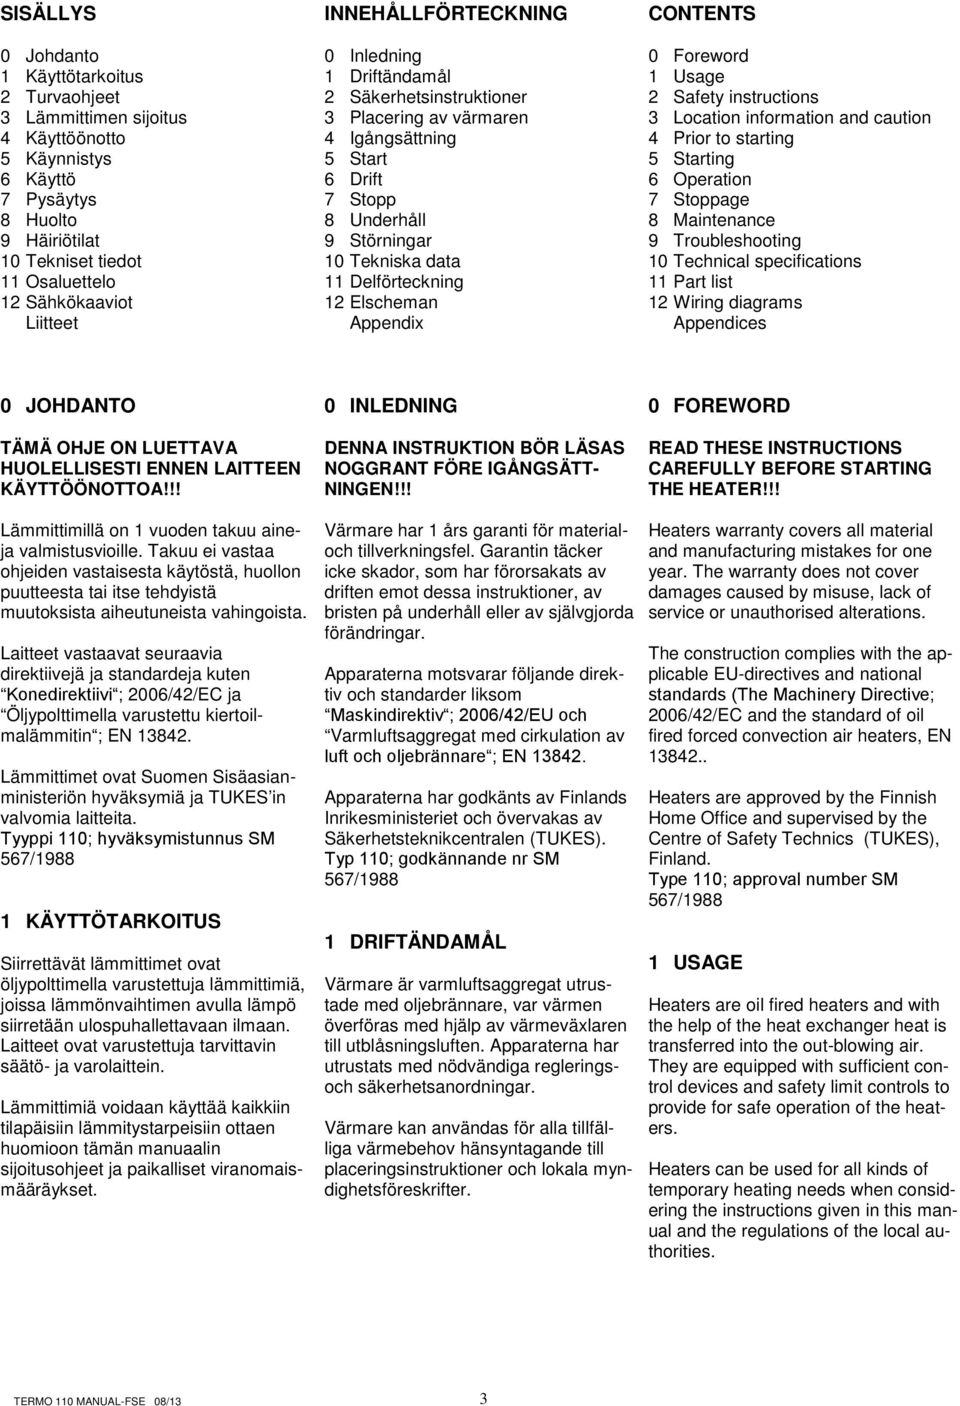 Delförteckning 12 Elscheman Appendix CONTENTS 0 Foreword 1 Usage 2 Safety instructions 3 Location information and caution 4 Prior to starting 5 Starting 6 Operation 7 Stoppage 8 Maintenance 9